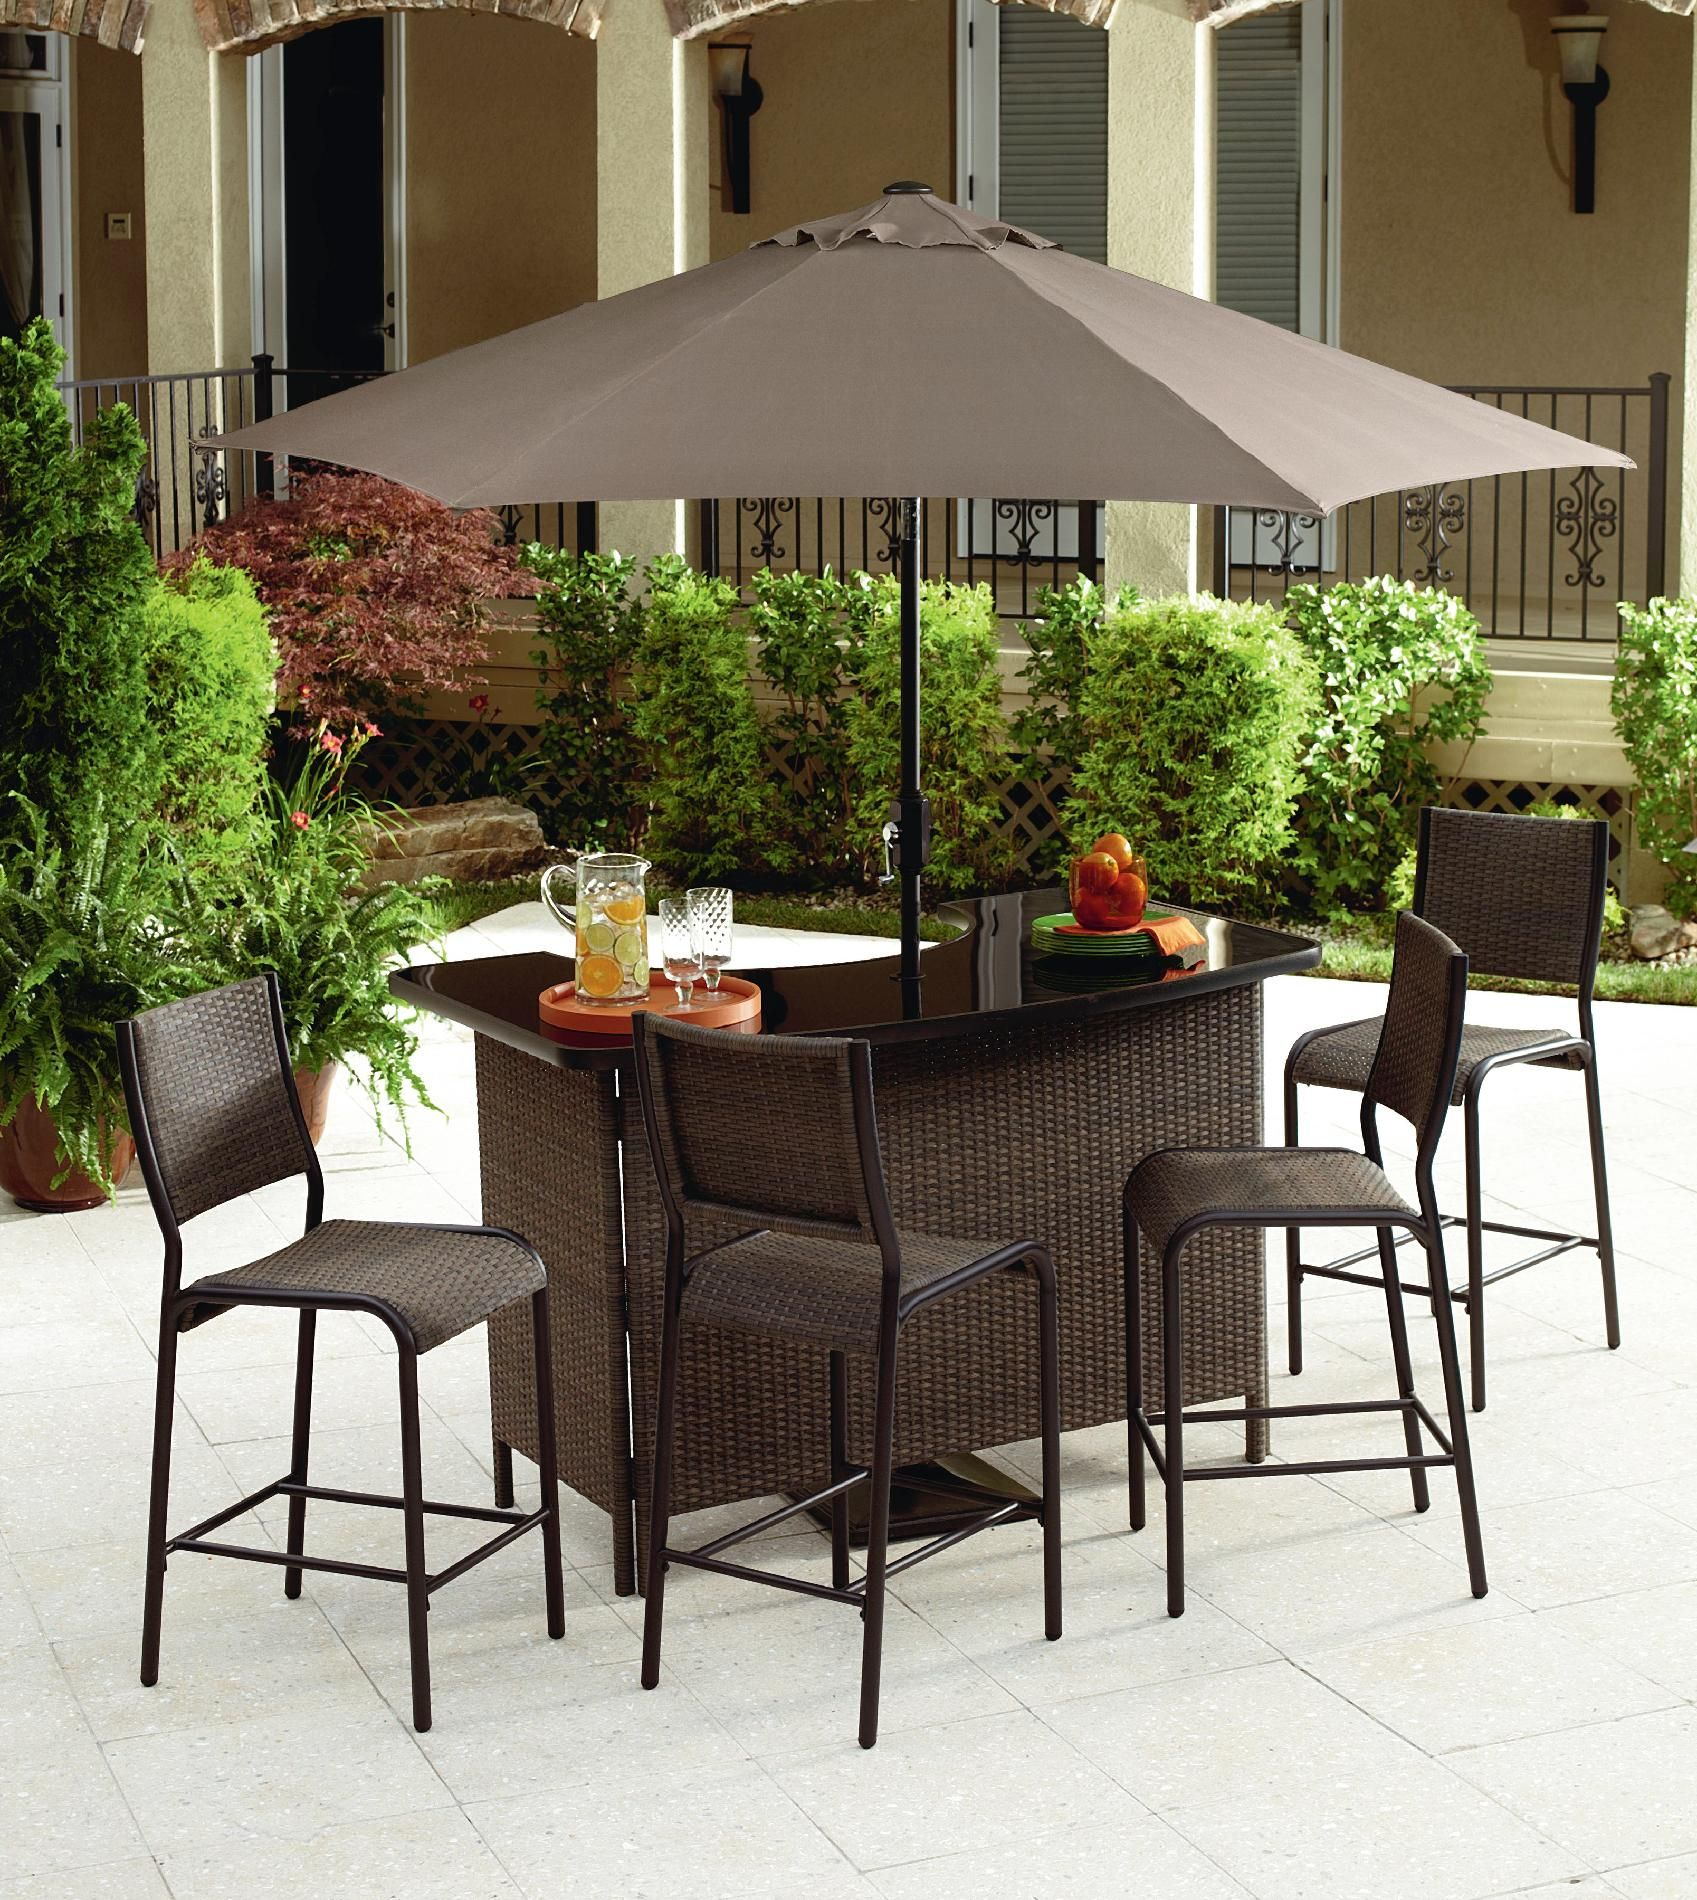 best chicago patio sale outside furniture boston near houston on sets me designs about chairs ny pinterest set bar home the bars buffalo ideas outdoor depot tables stools for